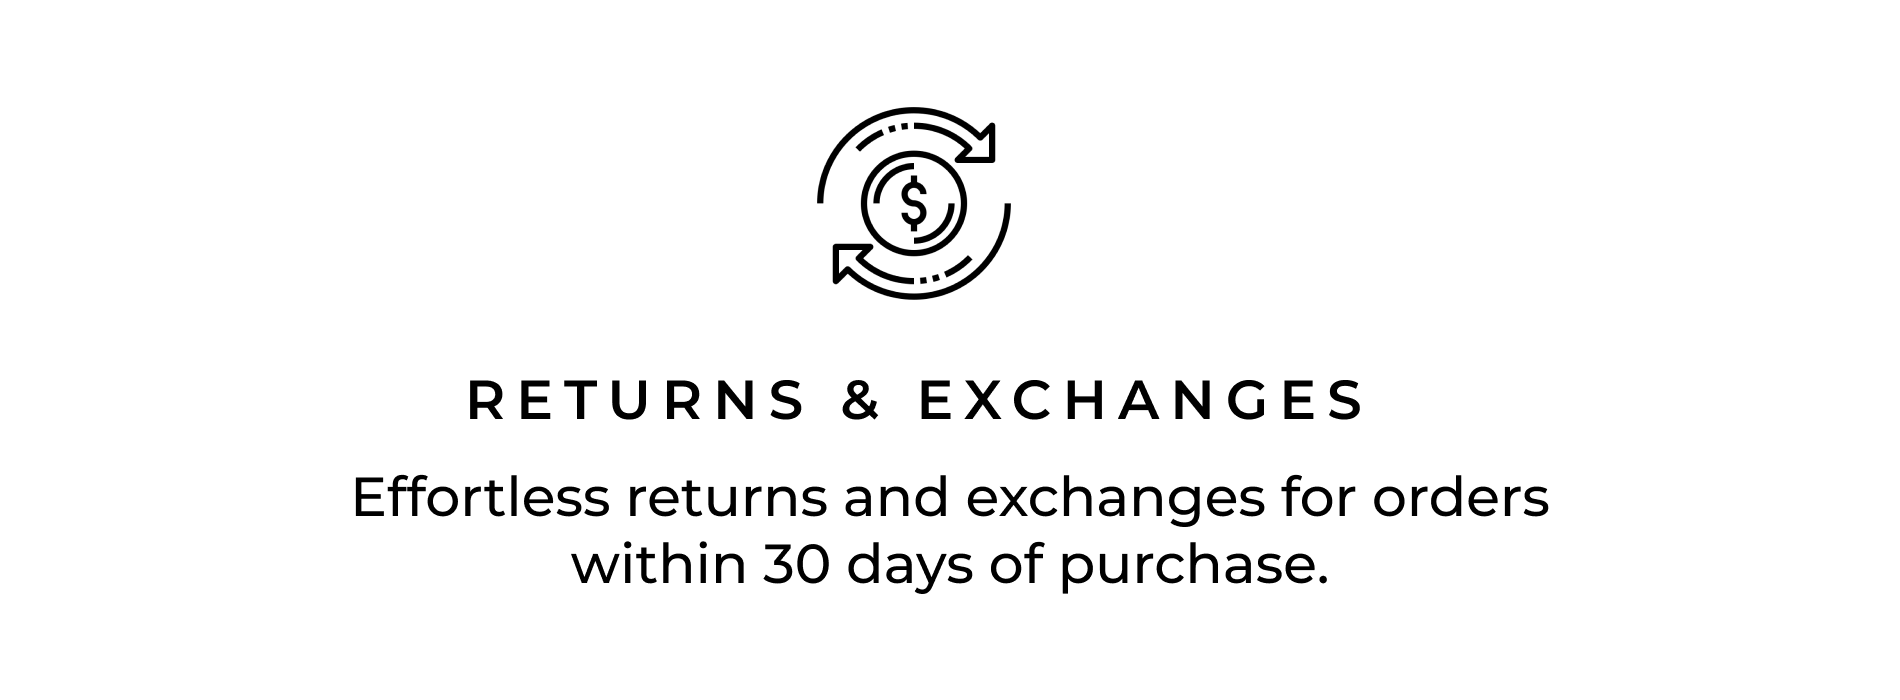 Returns & Exchanges icon